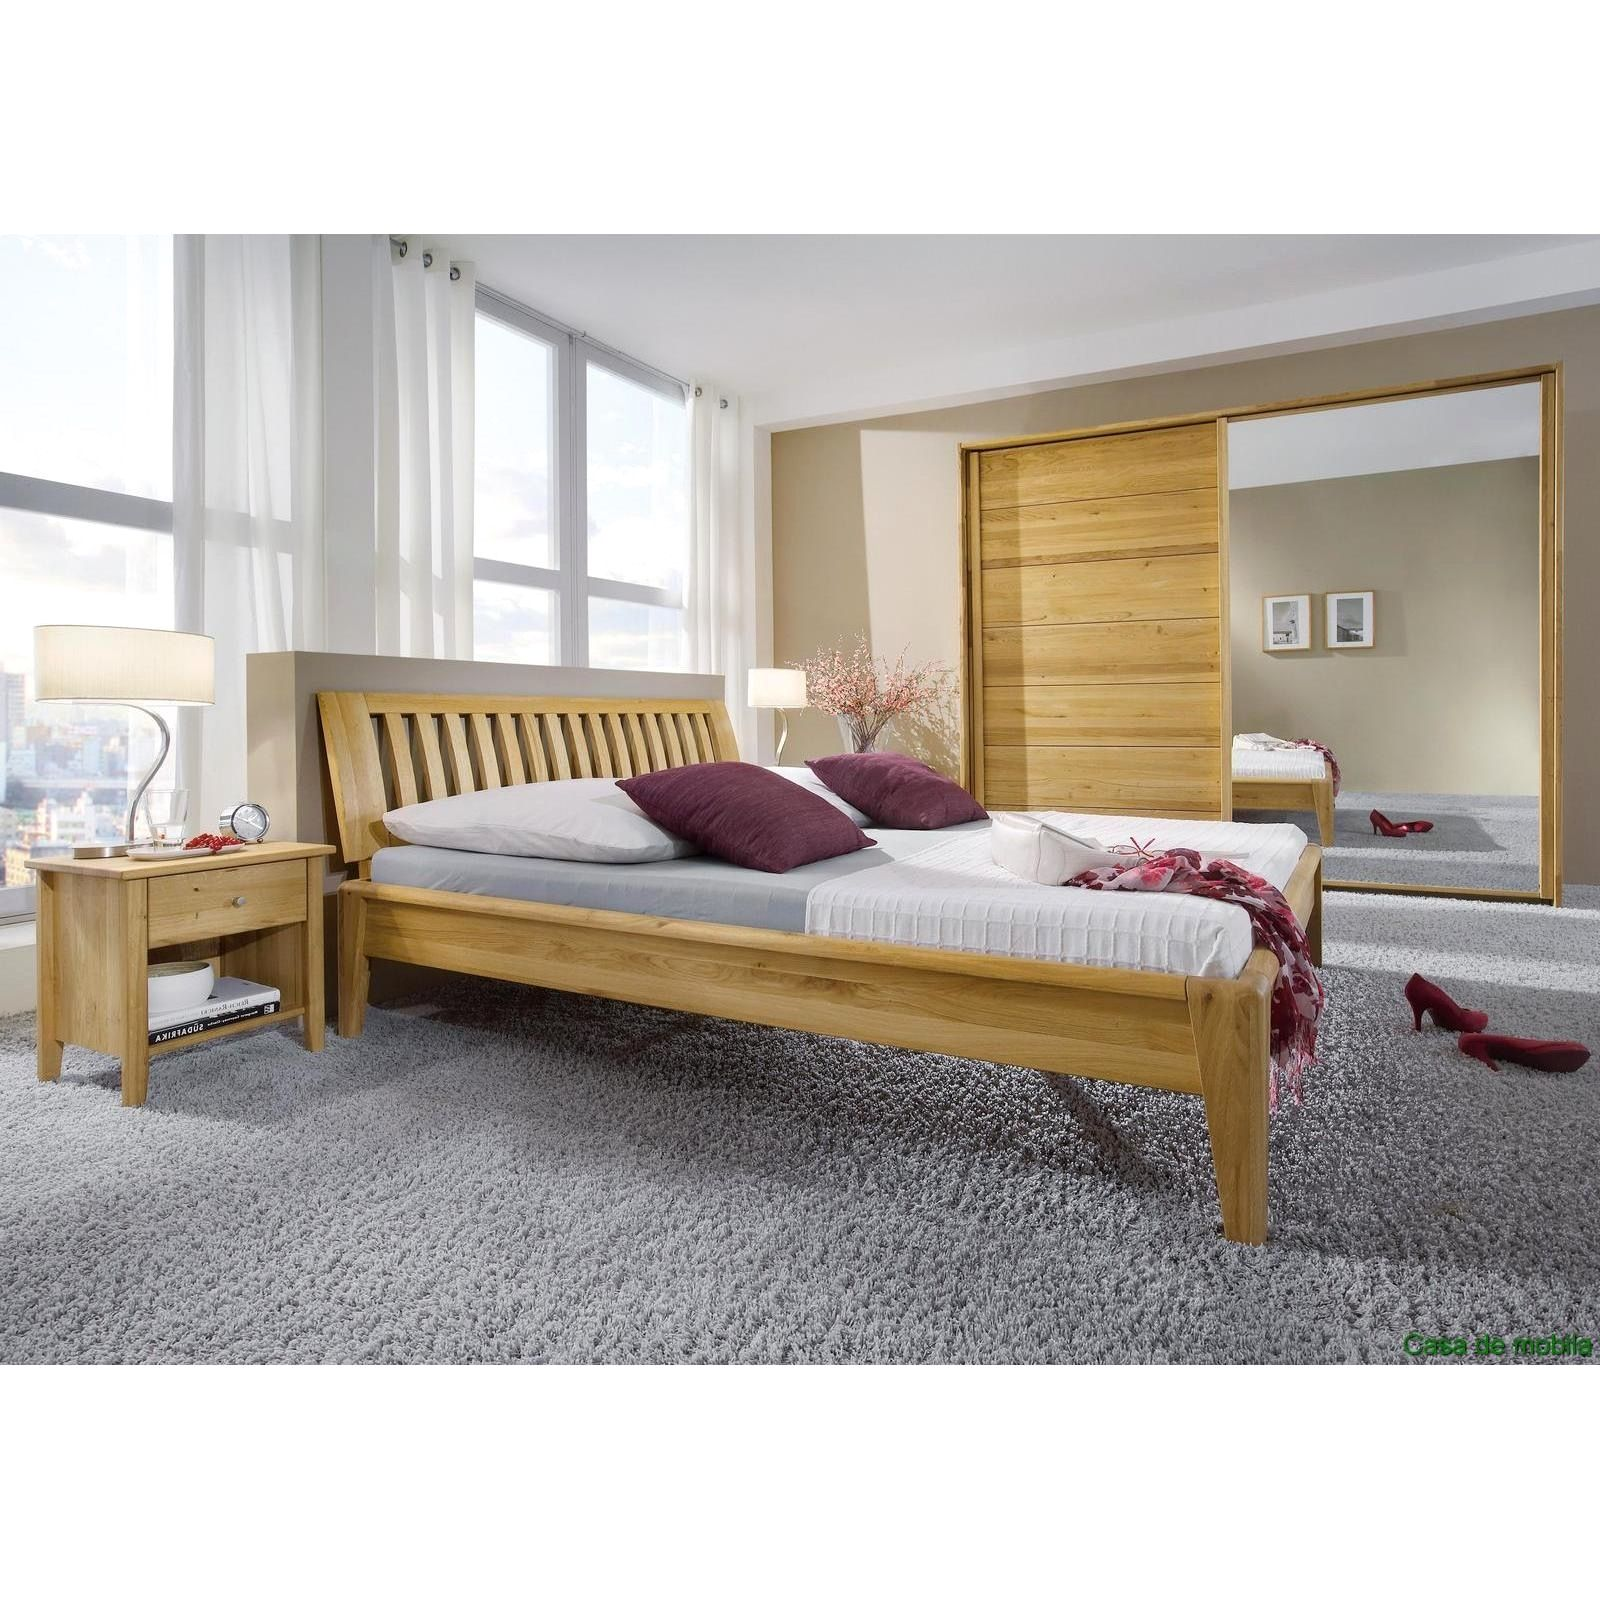 genial schlafzimmer komplett bett 160x200 deutsche deko. Black Bedroom Furniture Sets. Home Design Ideas